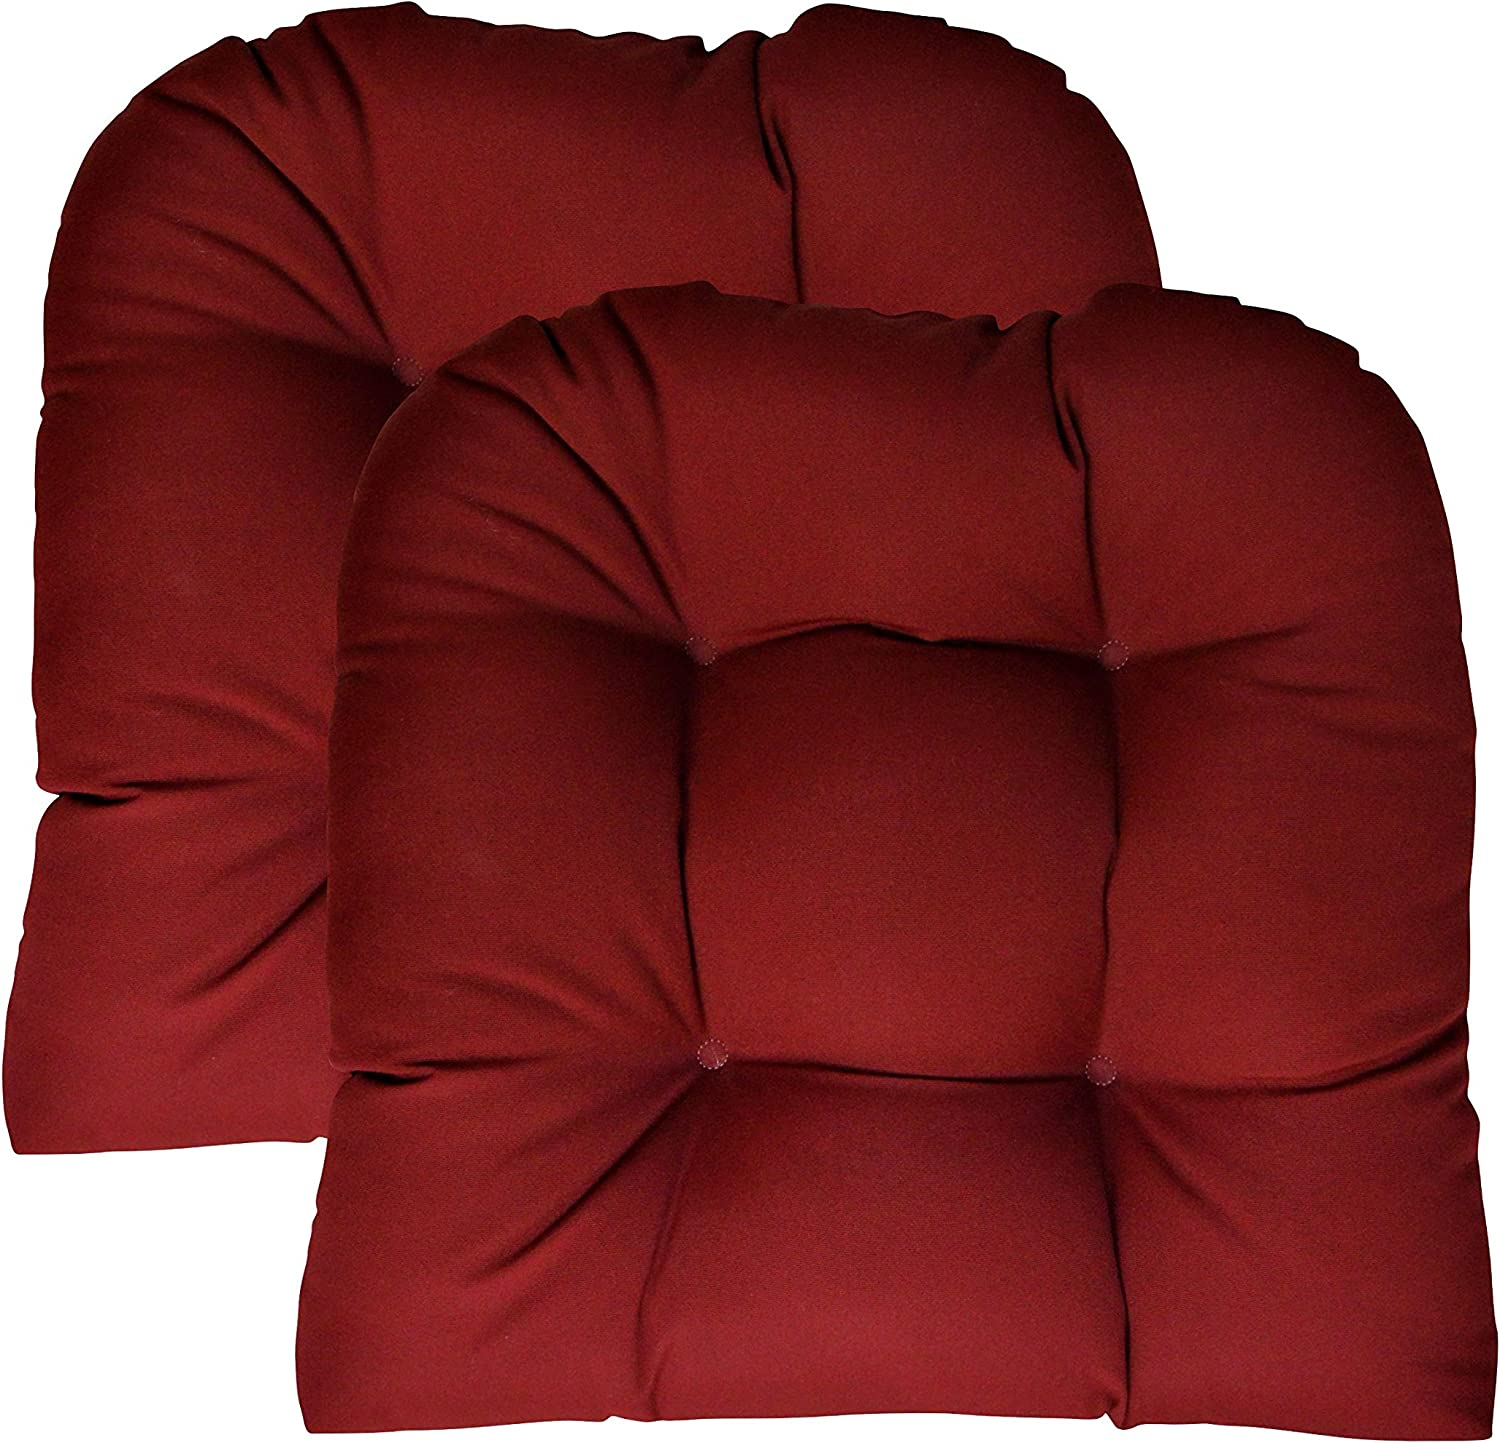 Sunbrella Canvas Burgundy Large 2 Piece Wicker Chair Cushion Set - Indoor / Outdoor Tufted Wicker Matching Chair Seat Cushions